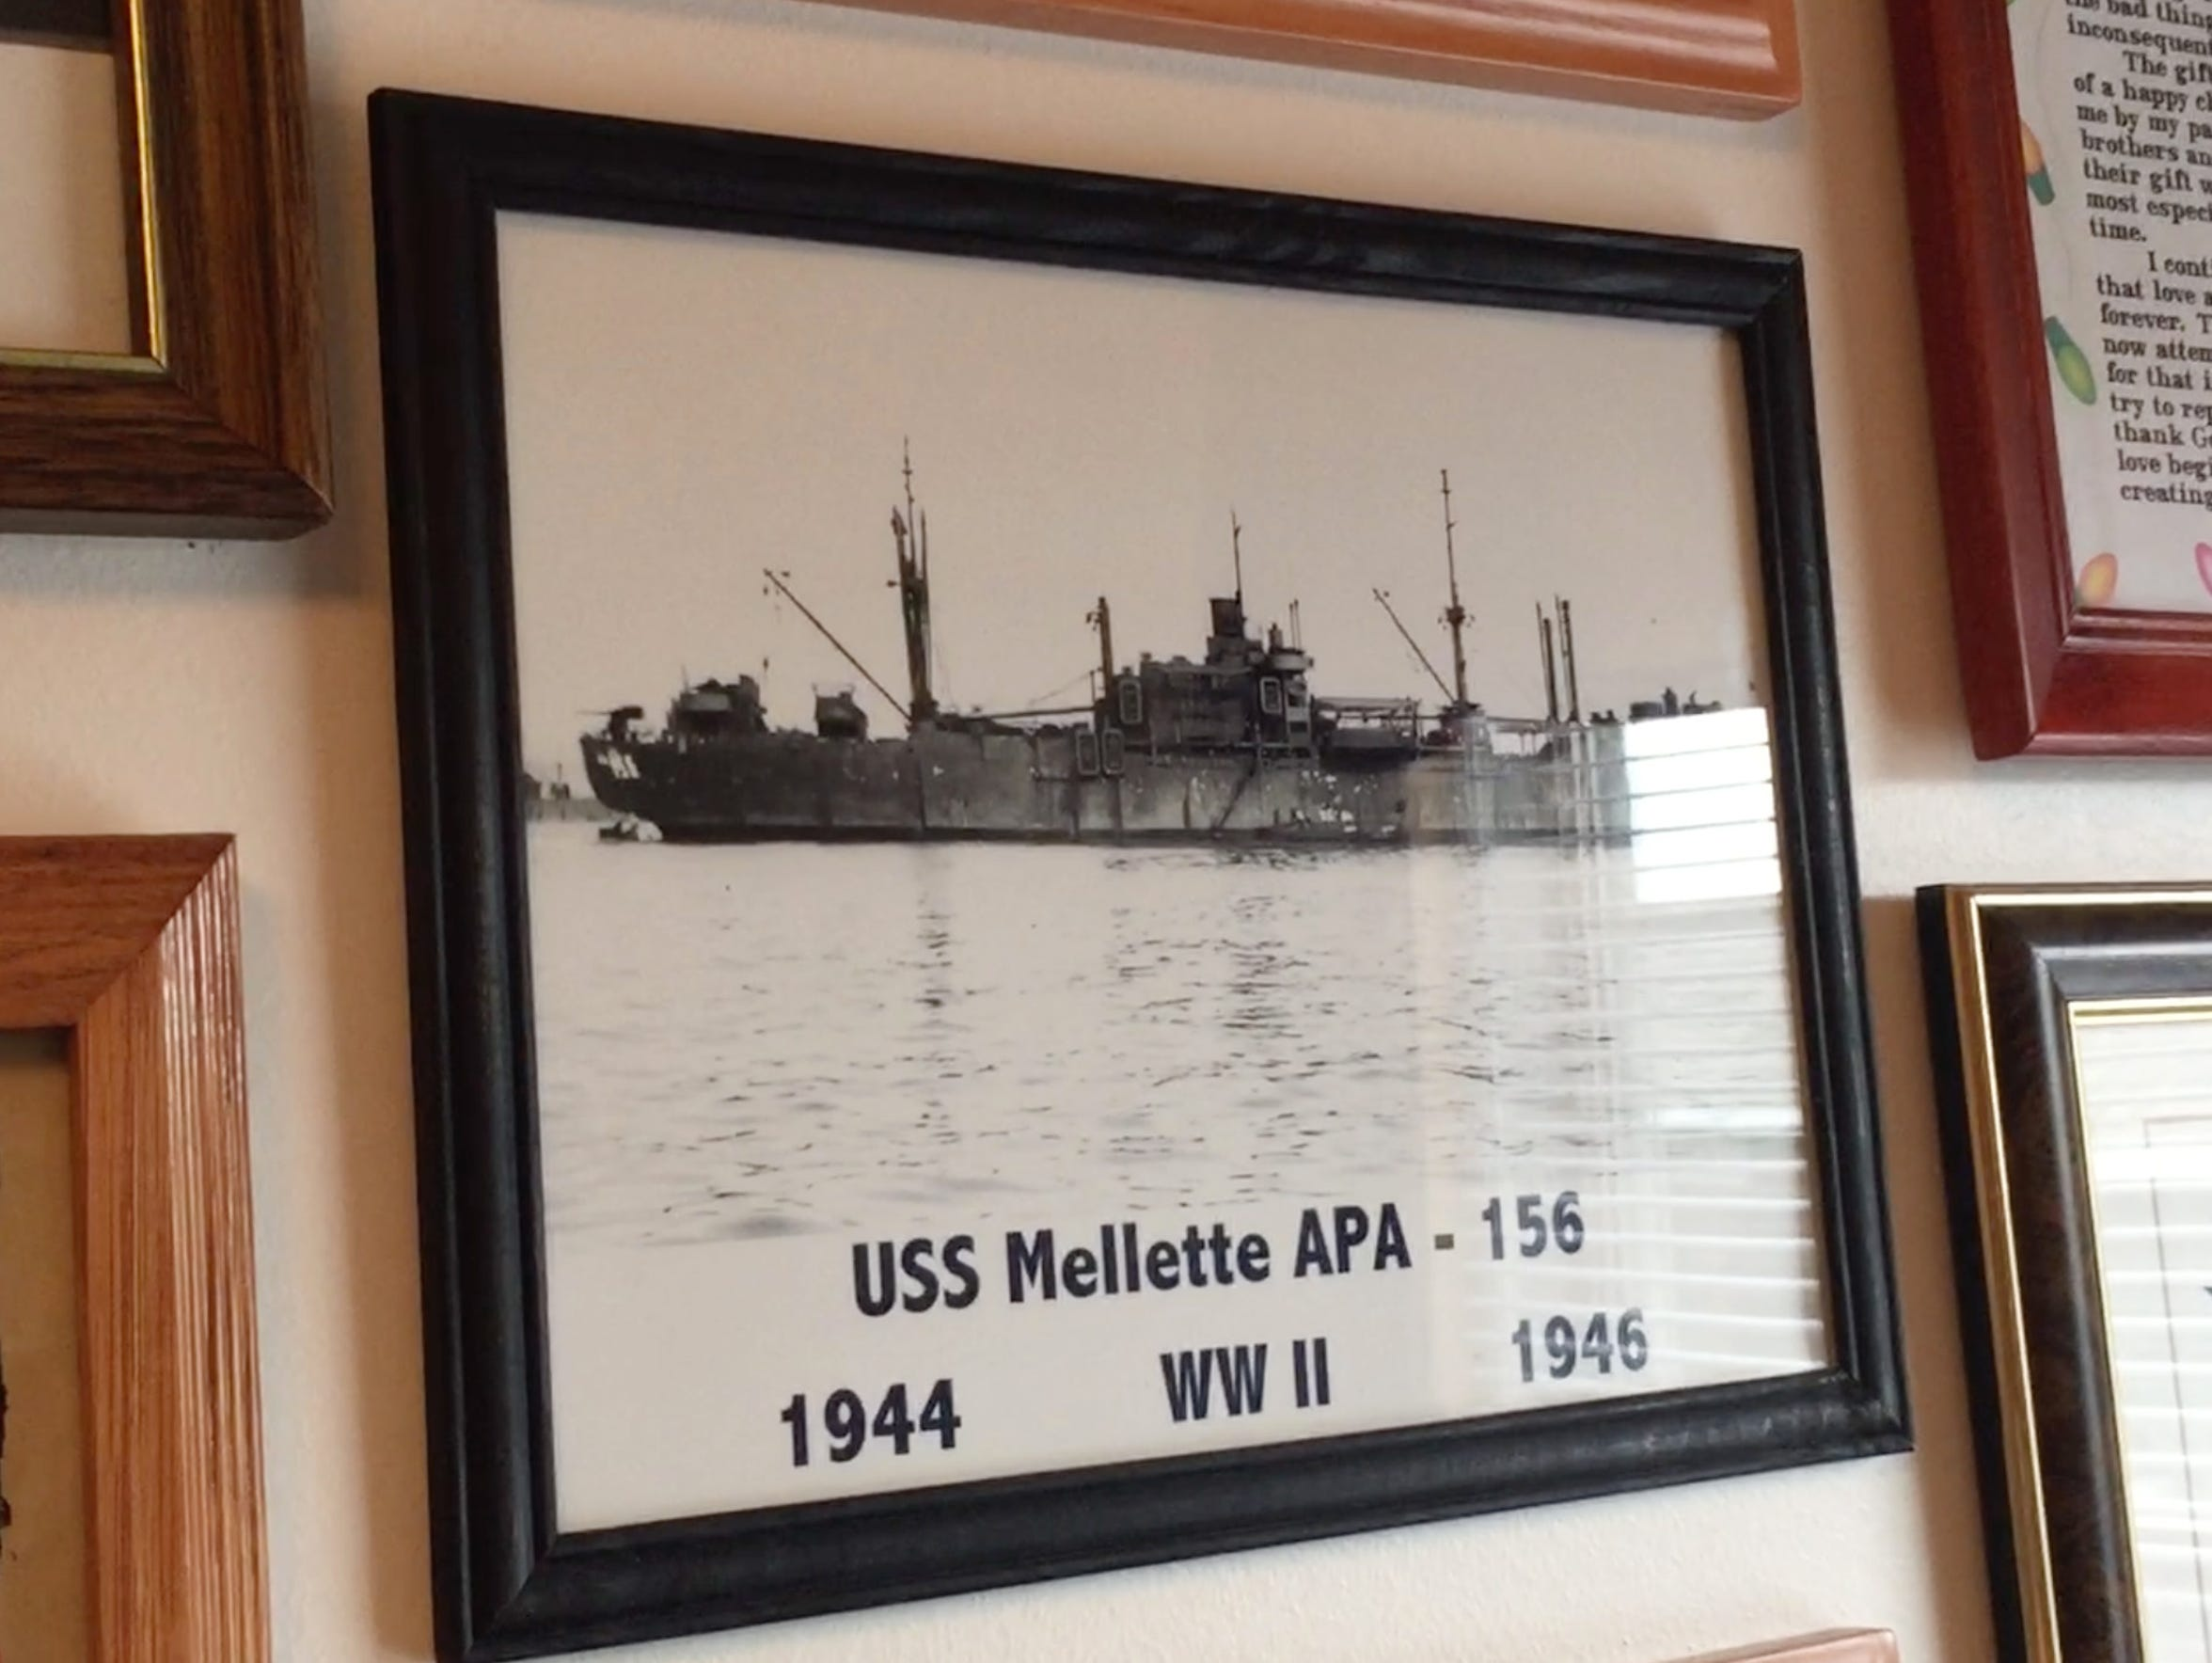 Hanging in James Reardon's home is a photo of the USS